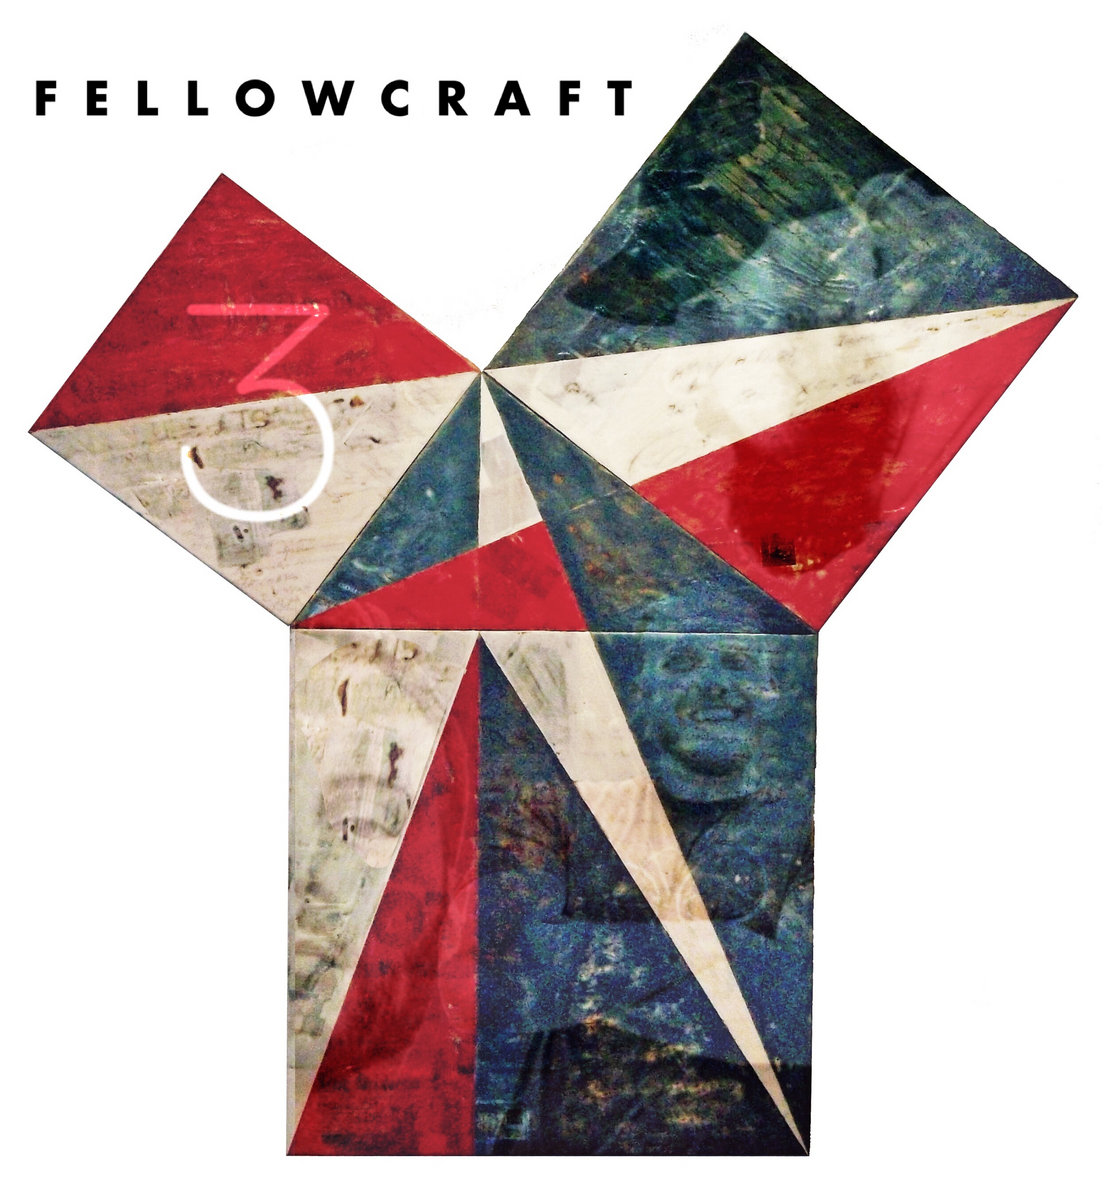 www.facebook.com/fellowcraftband